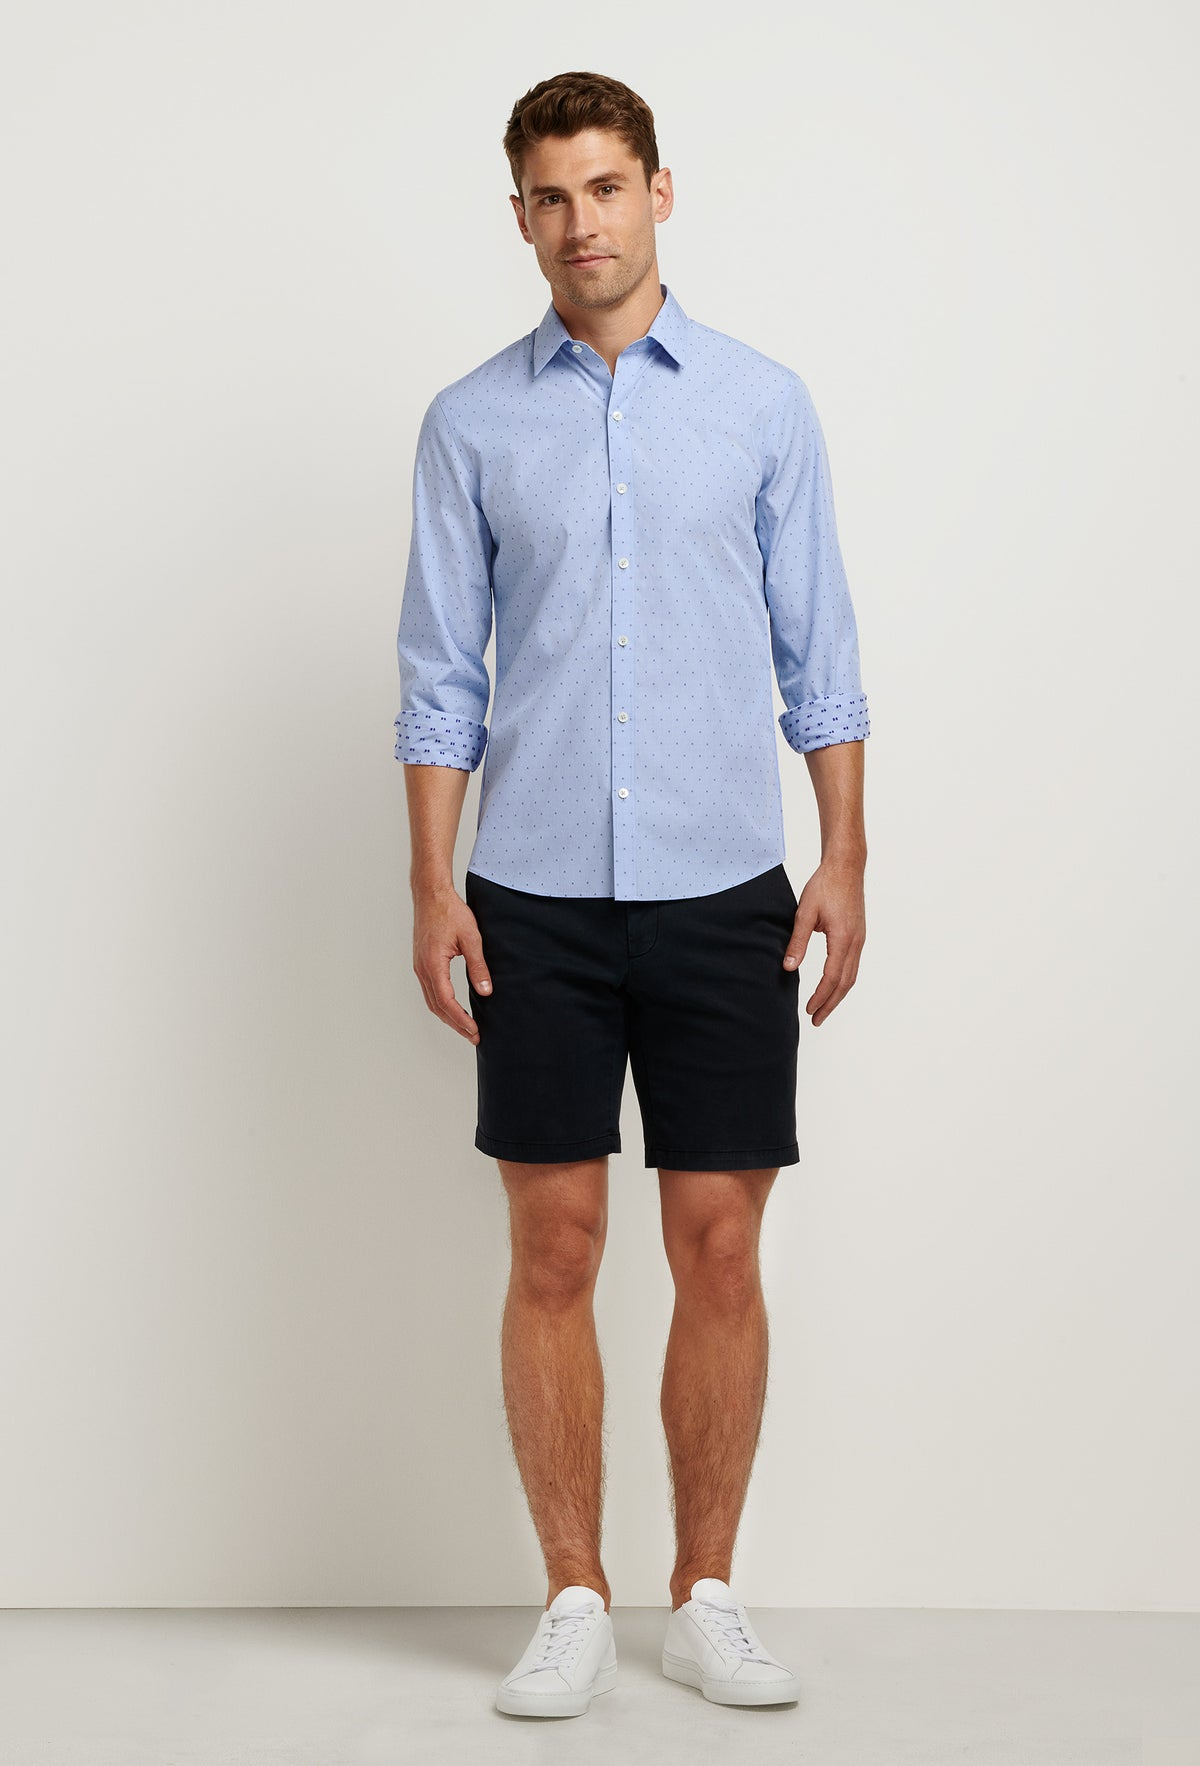 ZACHARY-PRELL-Cabrera-ShirtsModern-Menswear-New-Dress-Code